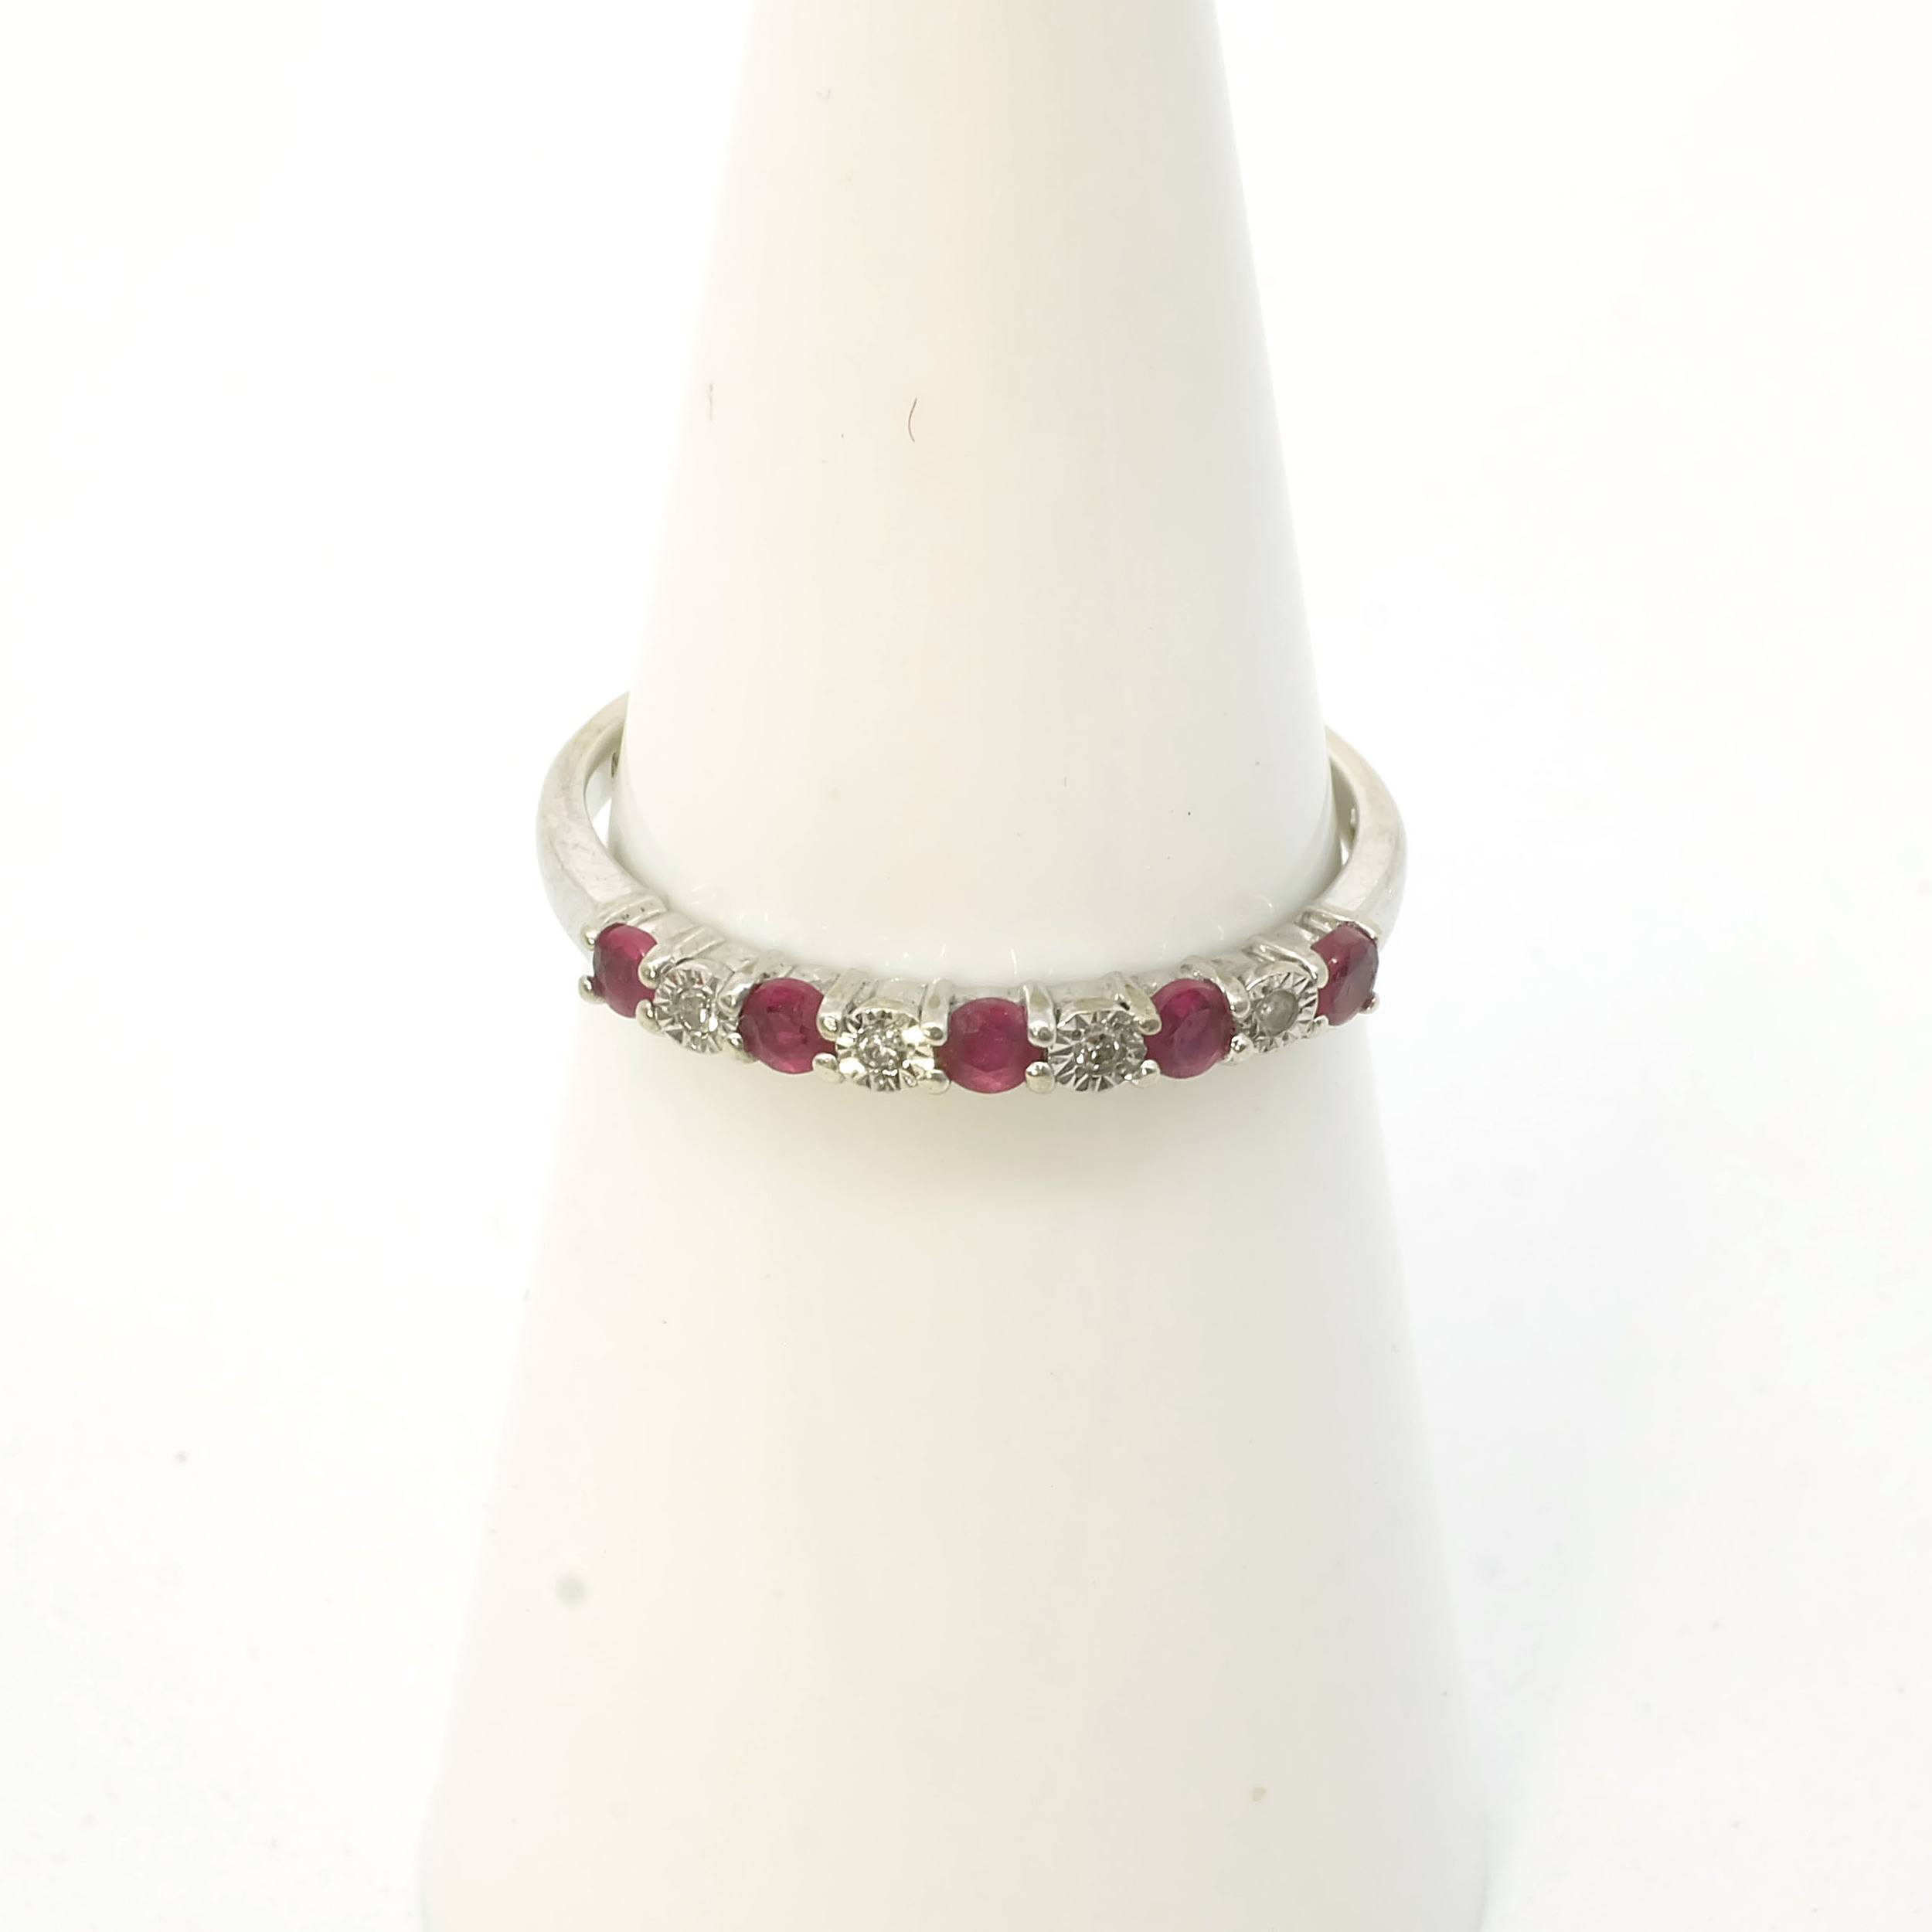 '10ct White Gold with Five Round Facetted Rubies and Four Round Single Cut Diamonds, 1.2g'